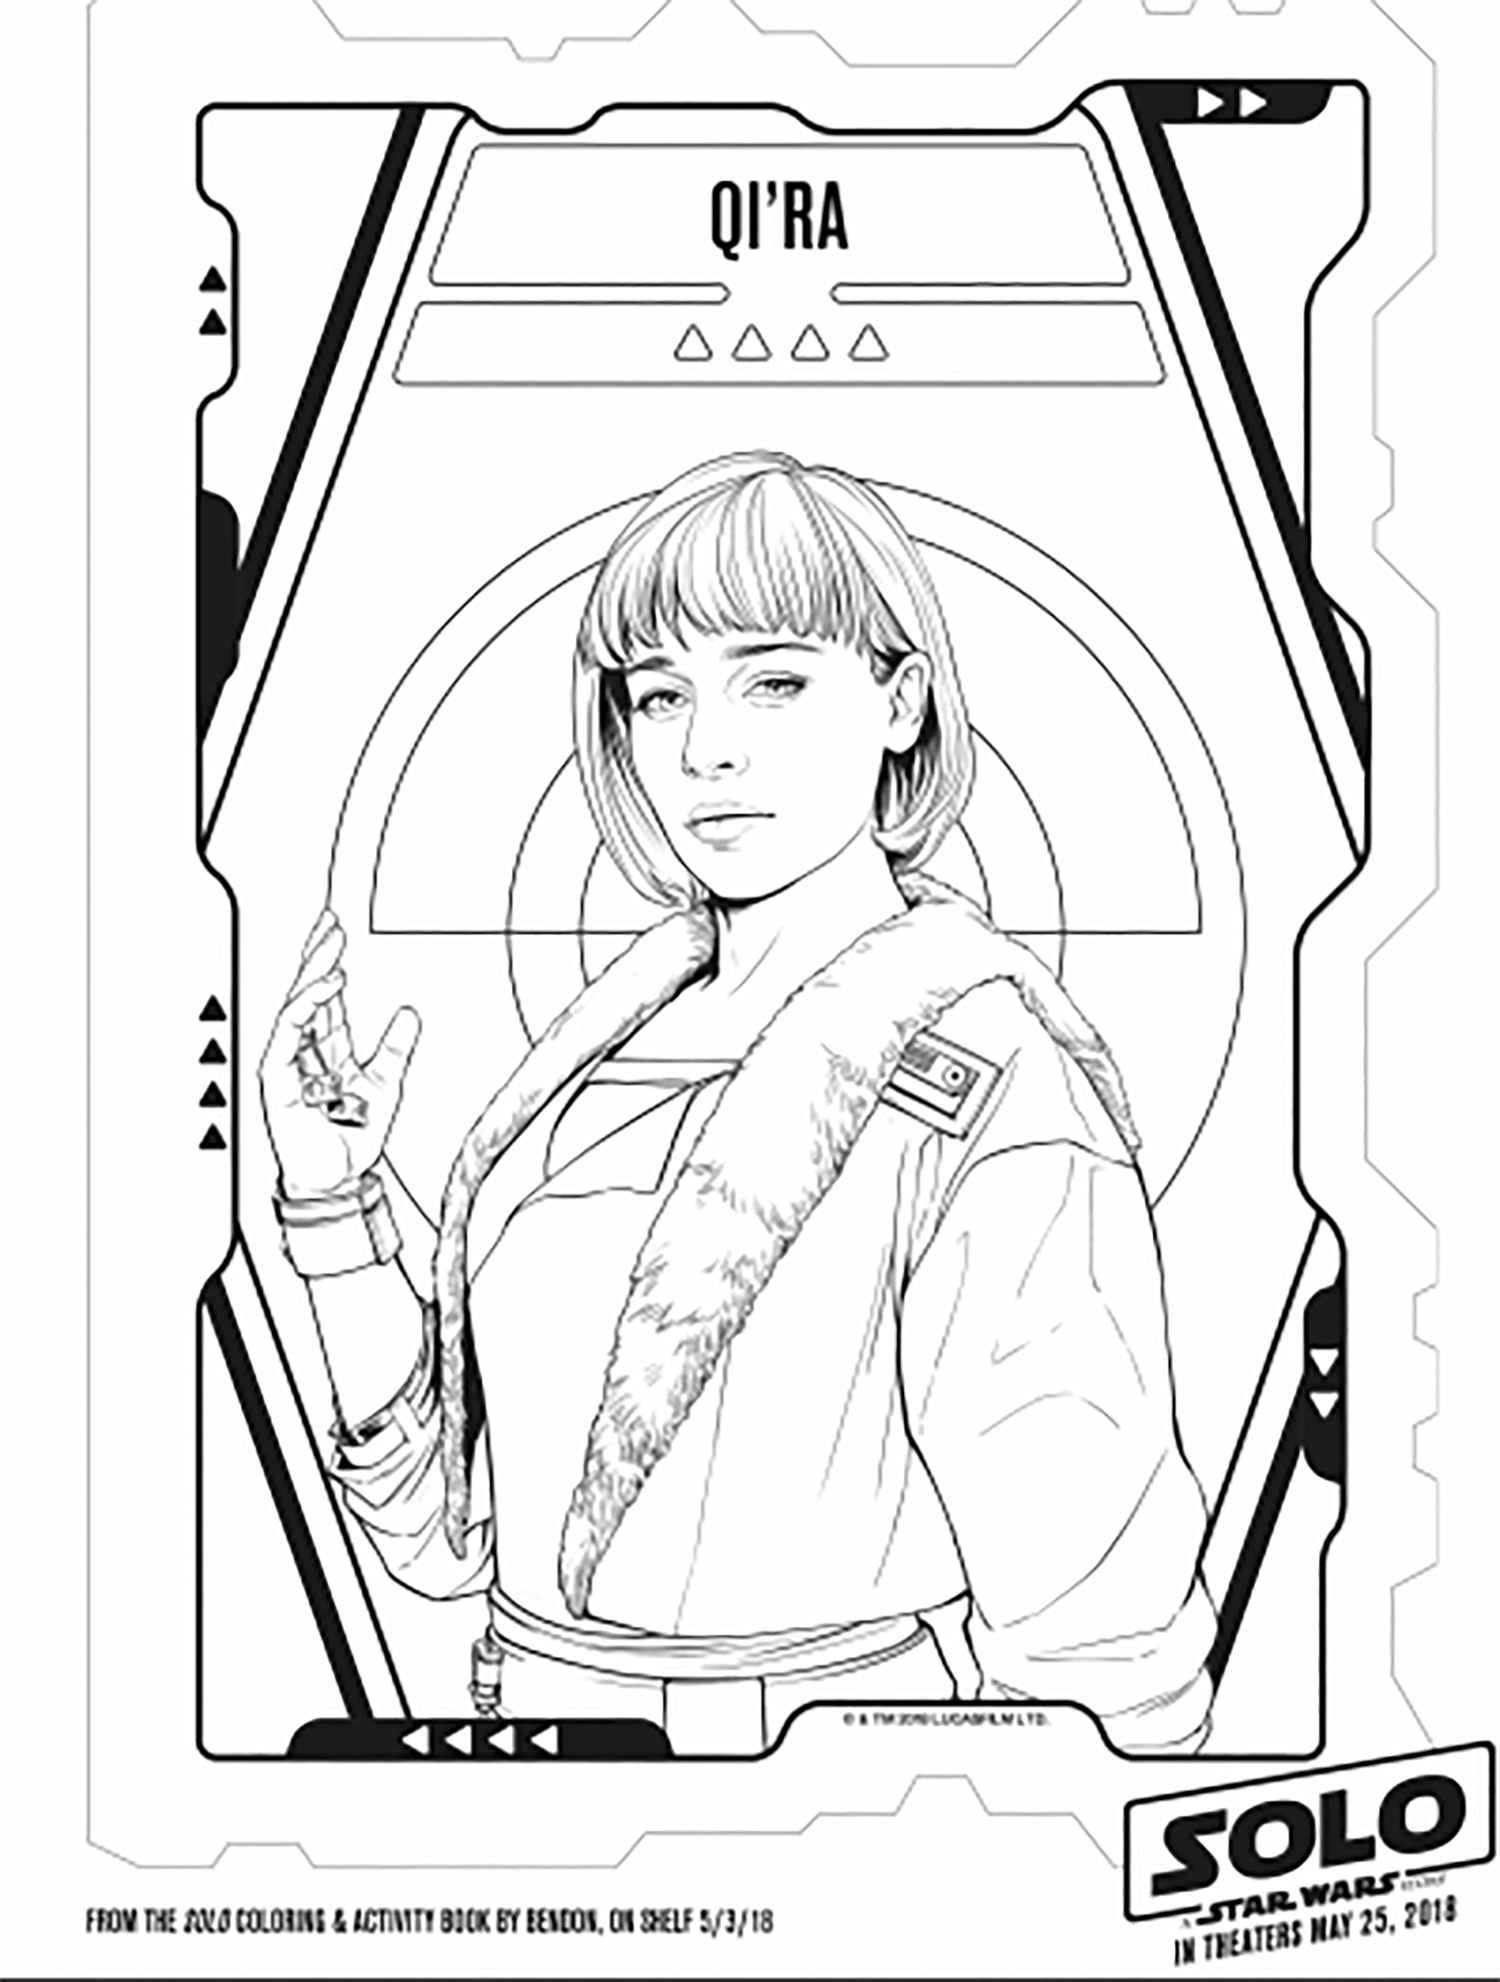 Star Wars coloring page to print and color